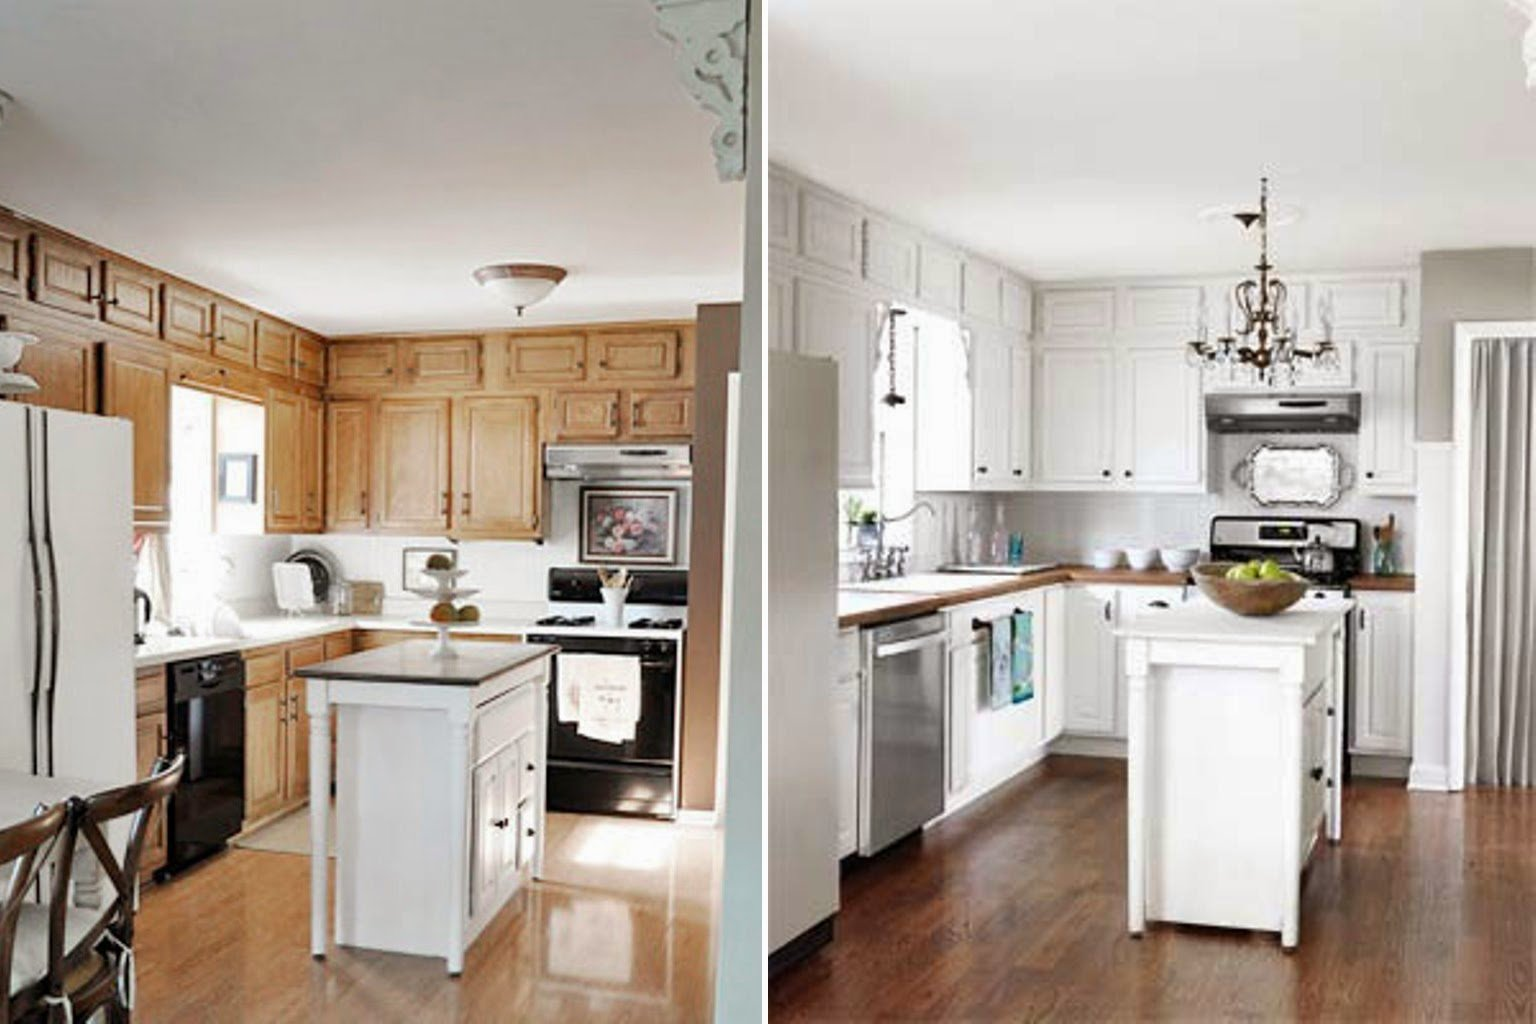 white kitchen cabinets before and after paint kitchen cabinets white before and after home 2054